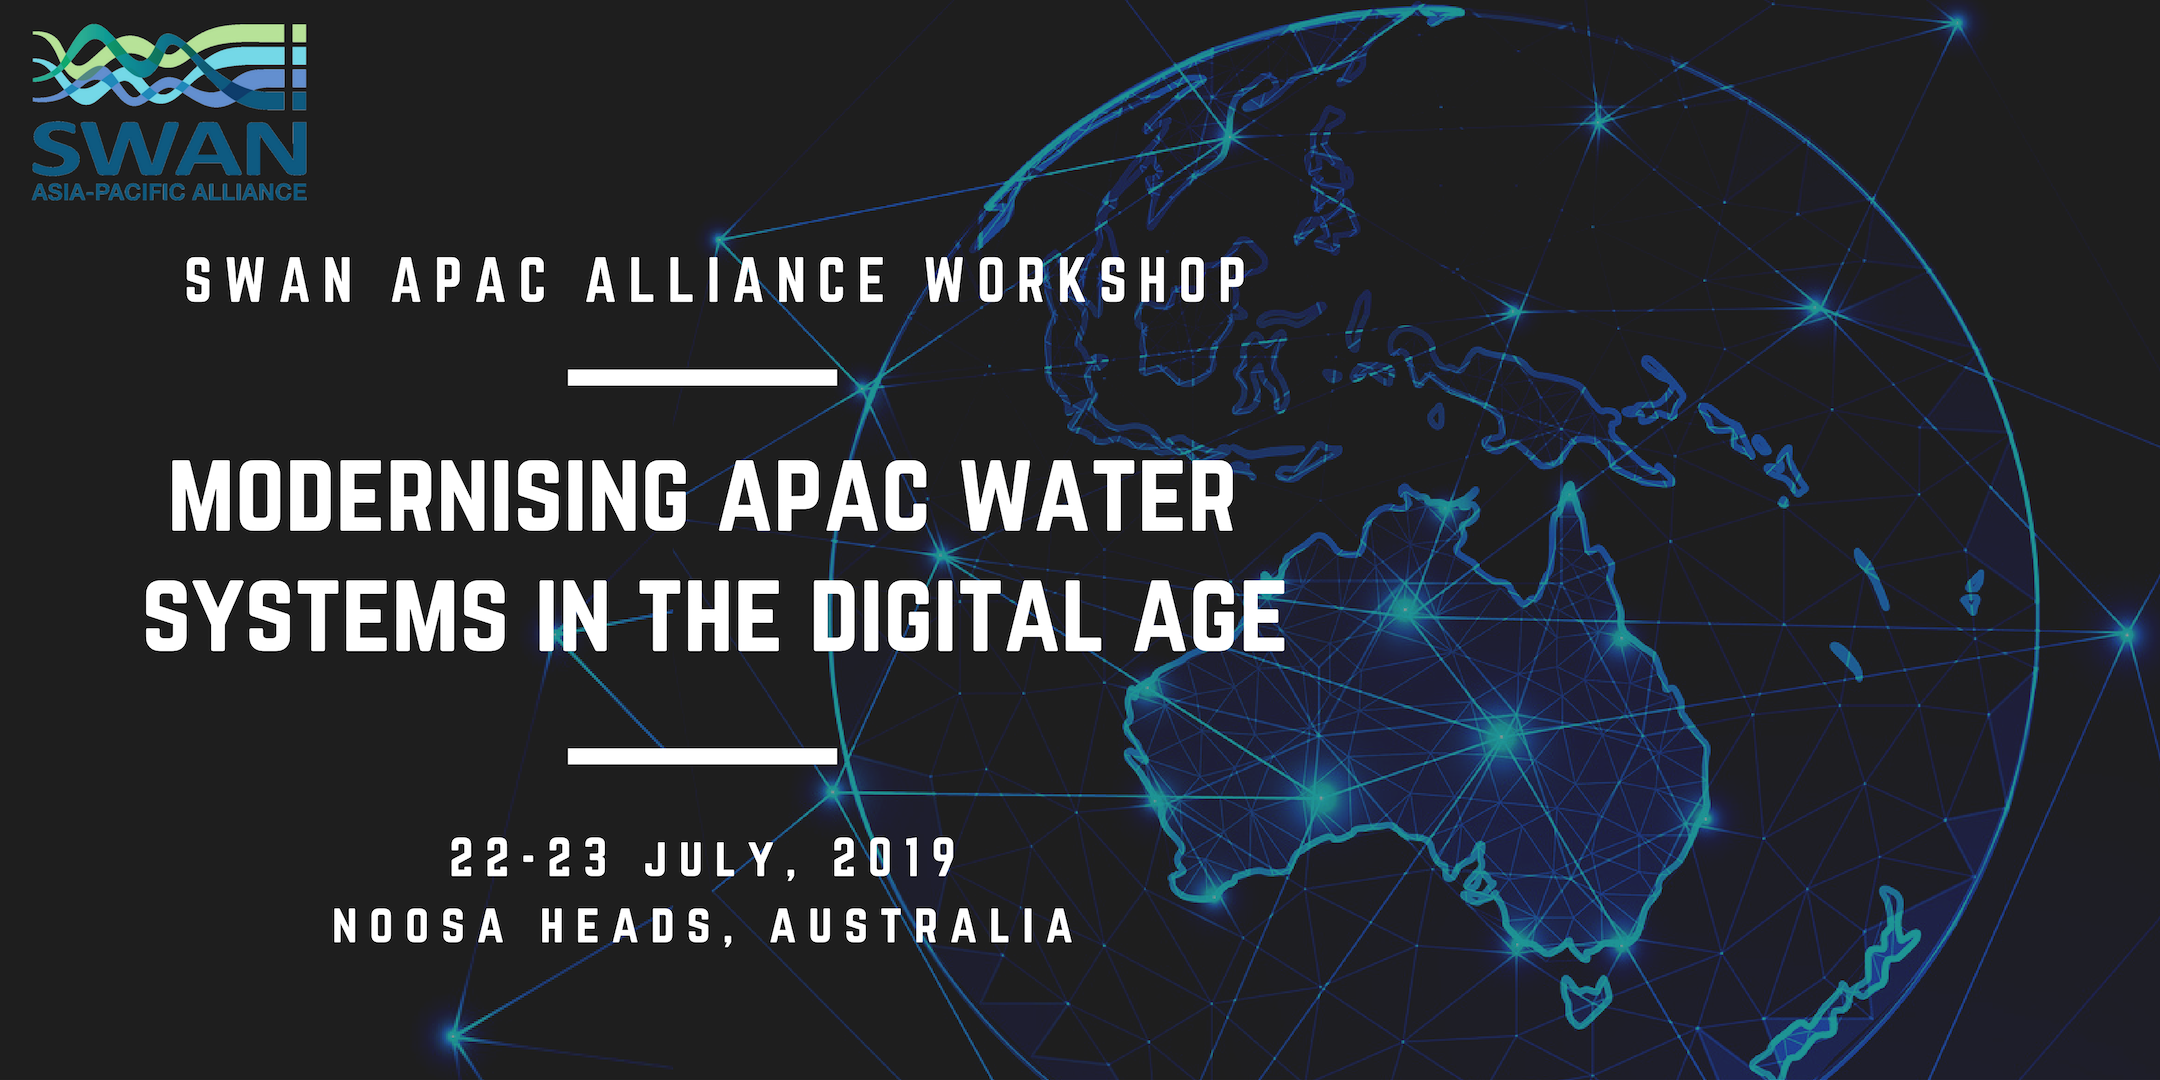 SWAN APAC Alliance workshop